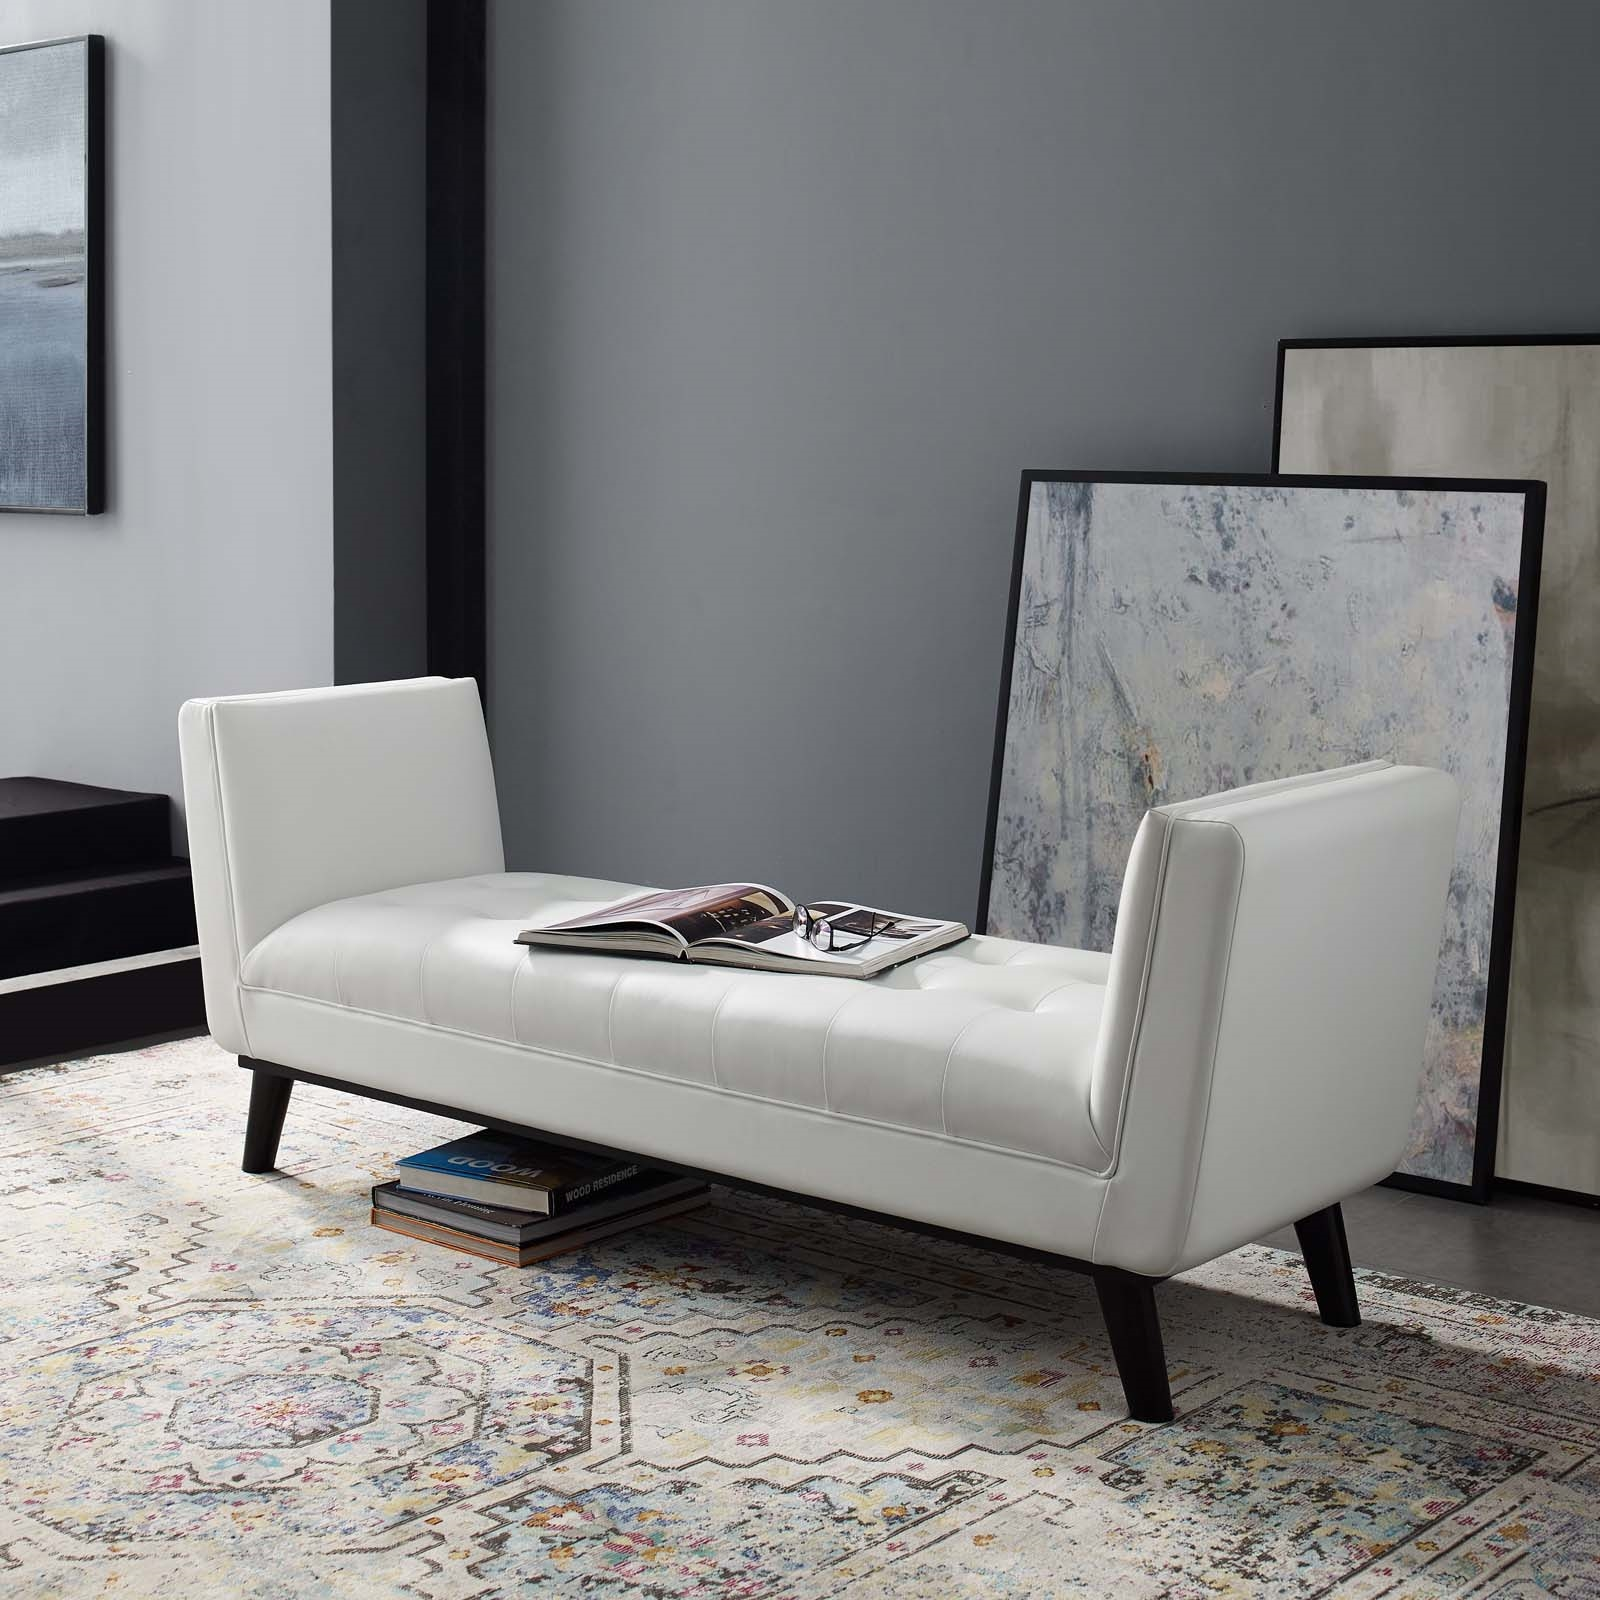 Haven Tufted Button Faux Leather Accent Bench in White